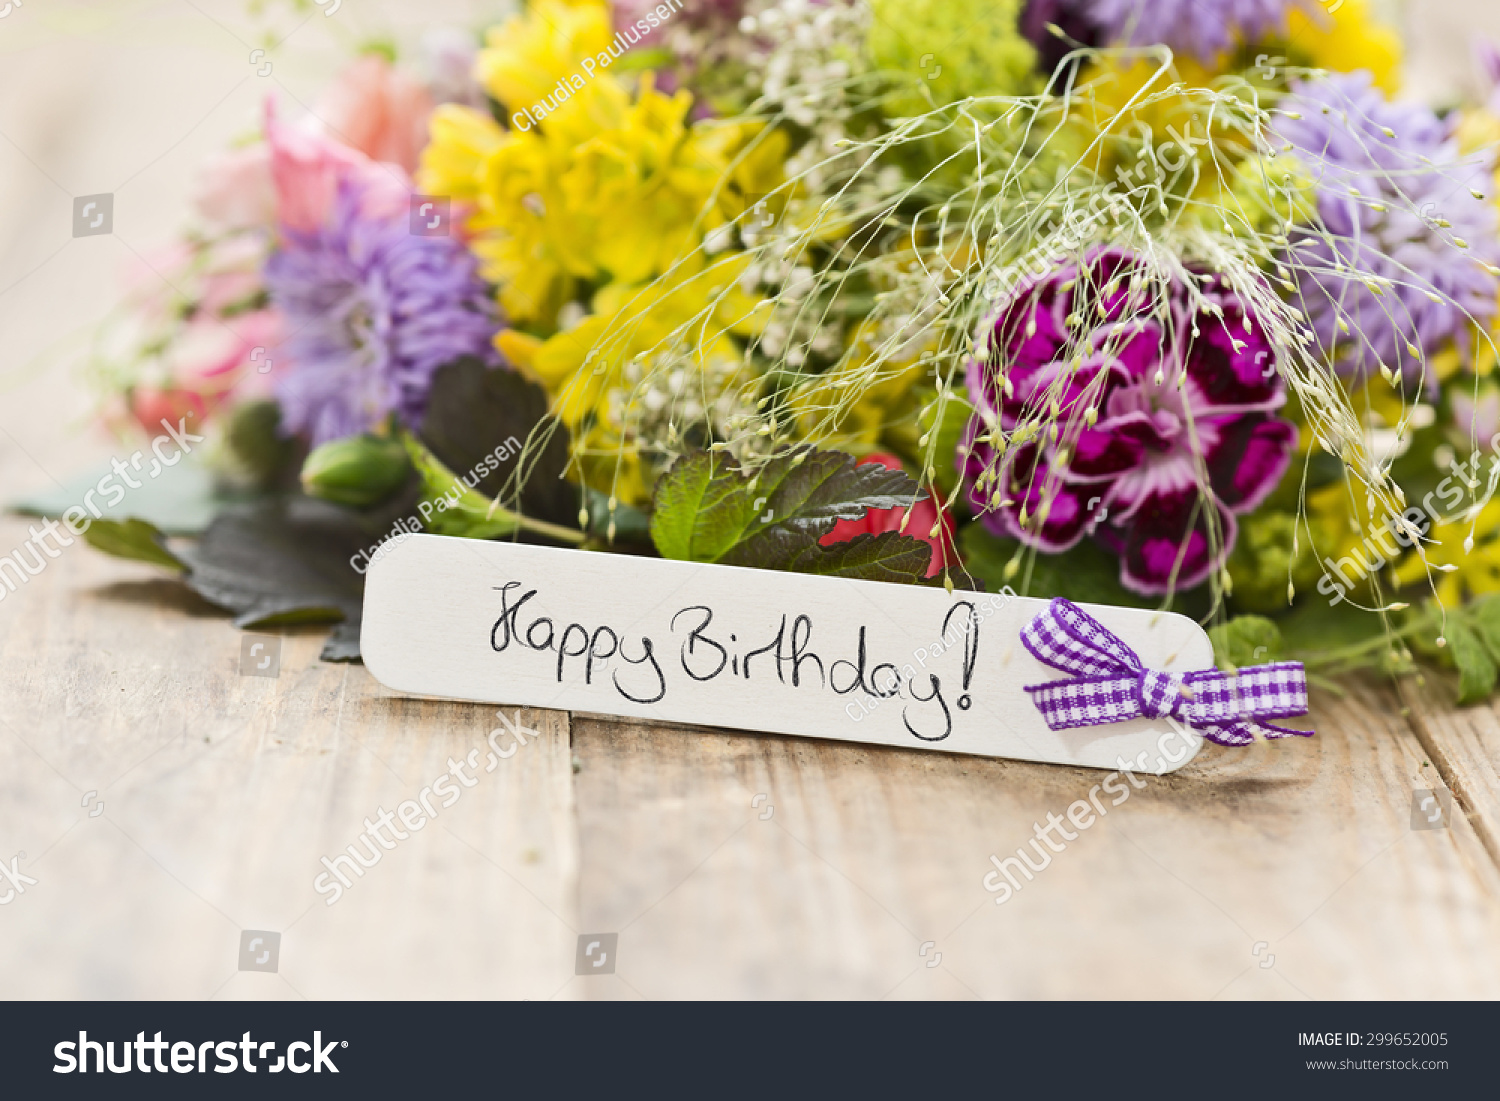 Bouquet flowers tag saying happy birthday stock photo 100 legal a bouquet of flowers with a tag saying happy birthday izmirmasajfo